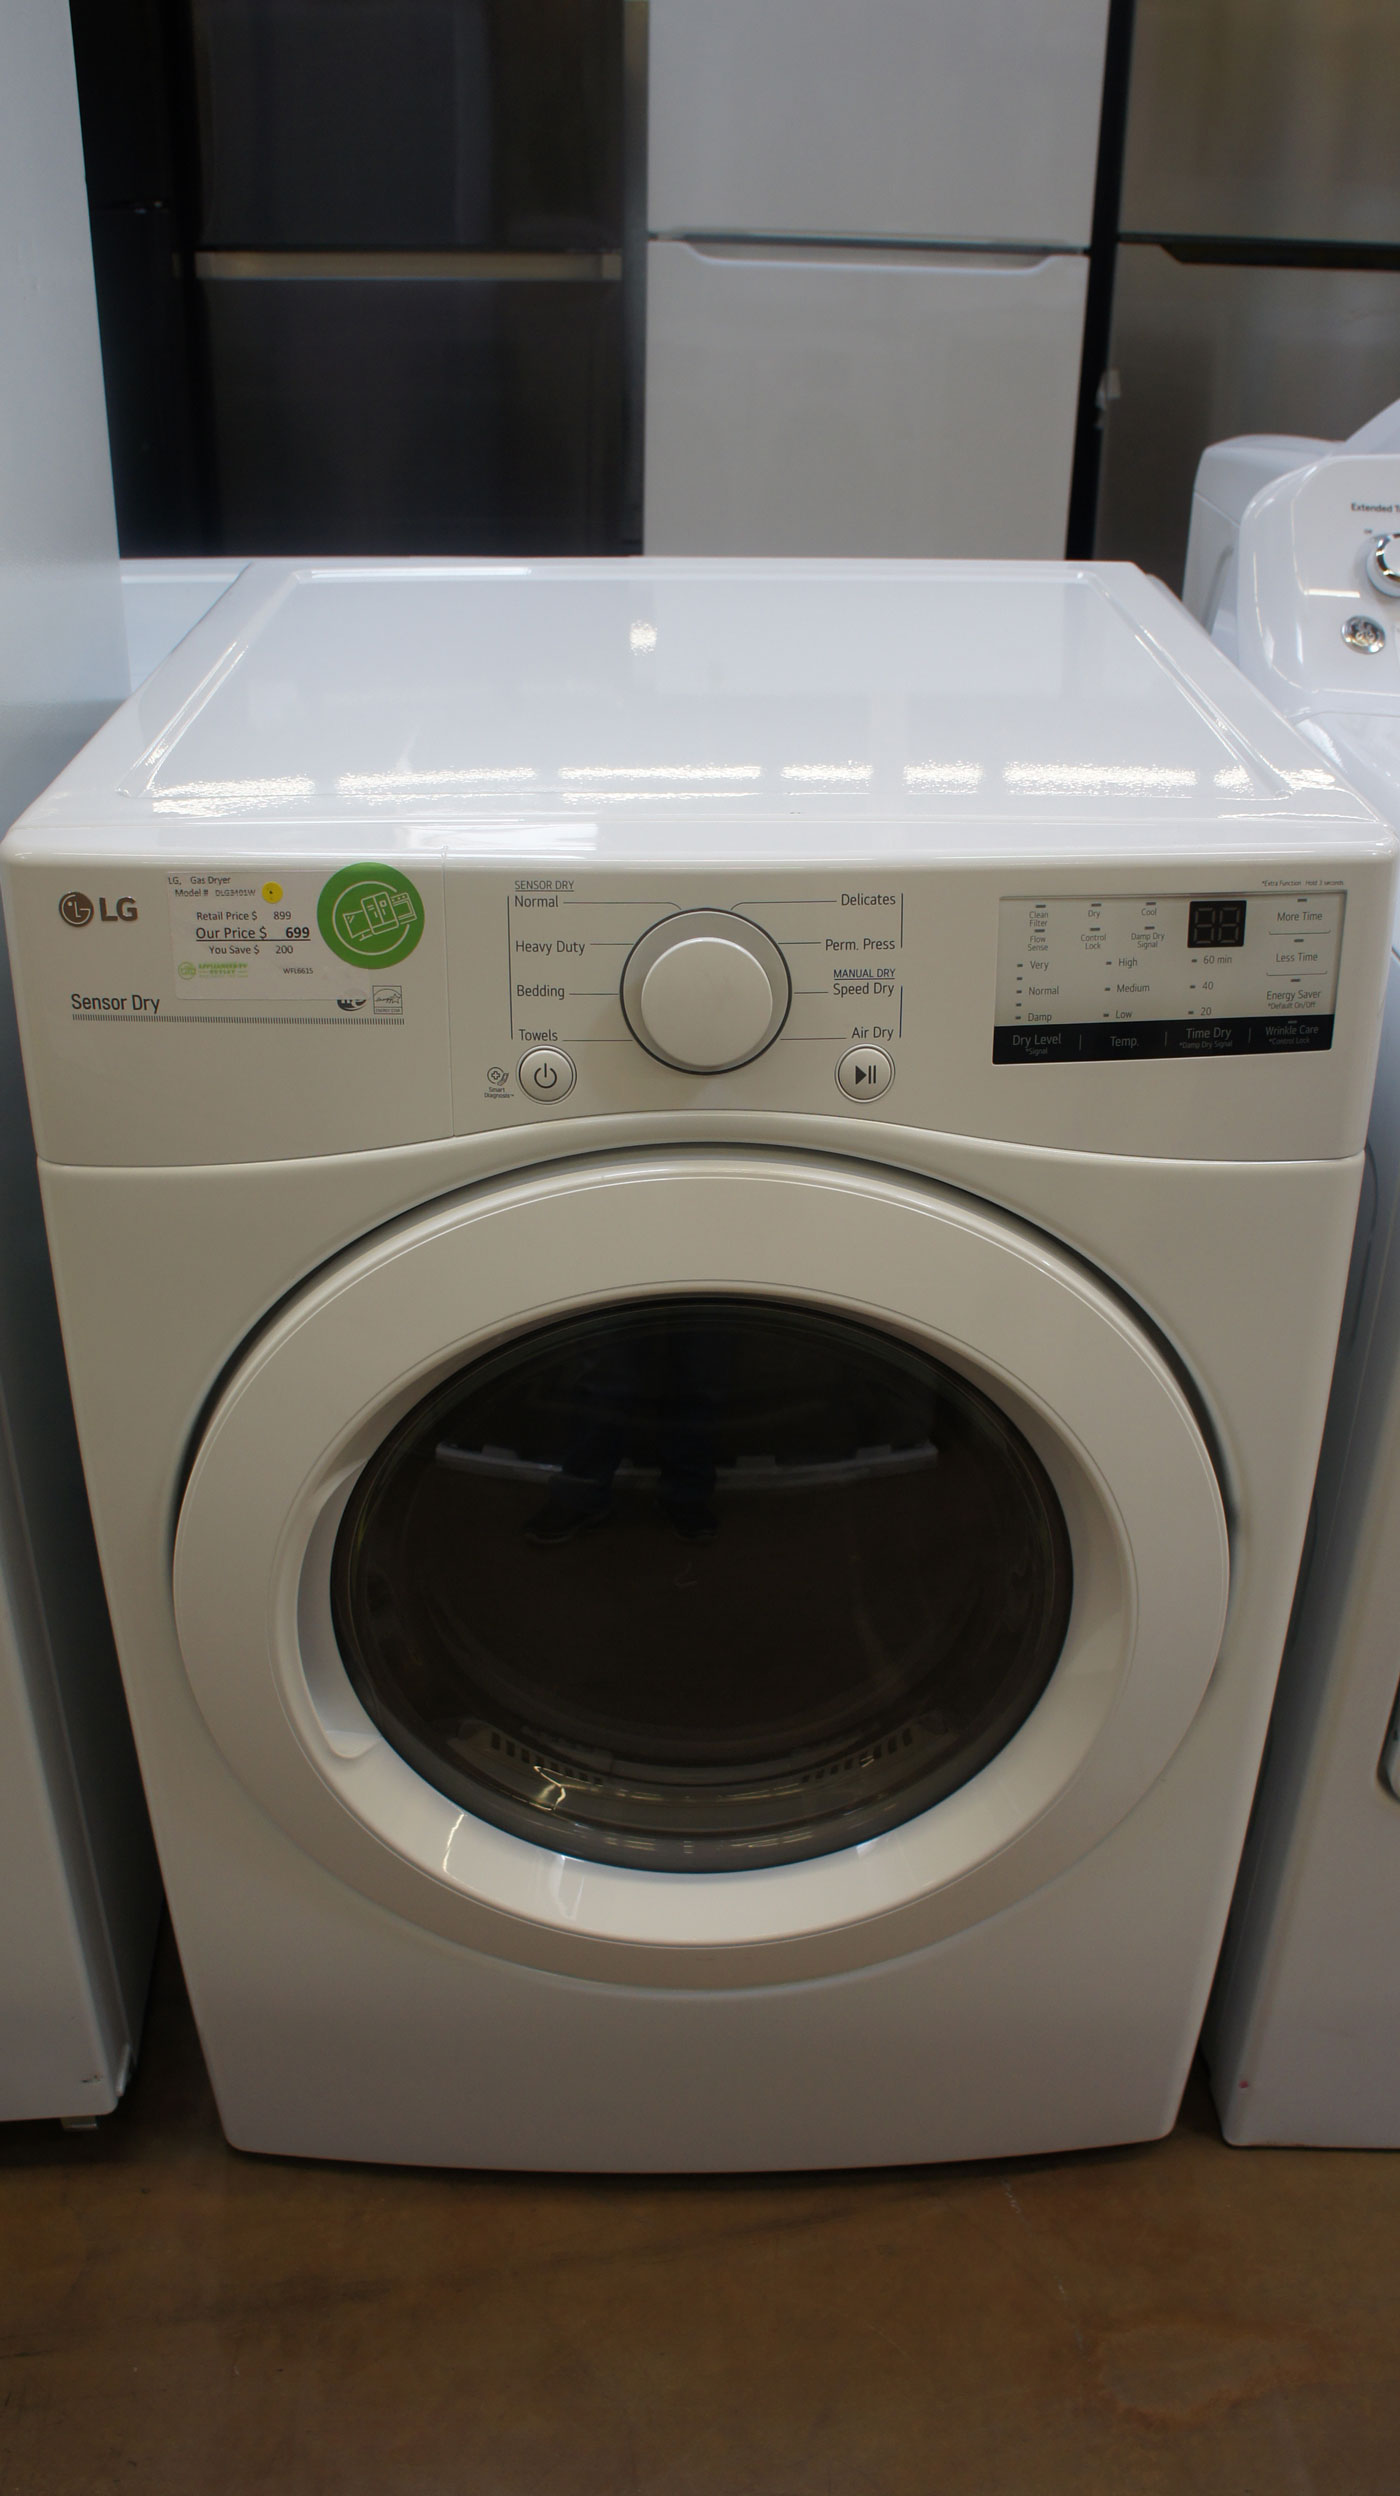 "27"" LG DLG3401W 7.4 cu.ft. Front Load Gas Dryer"